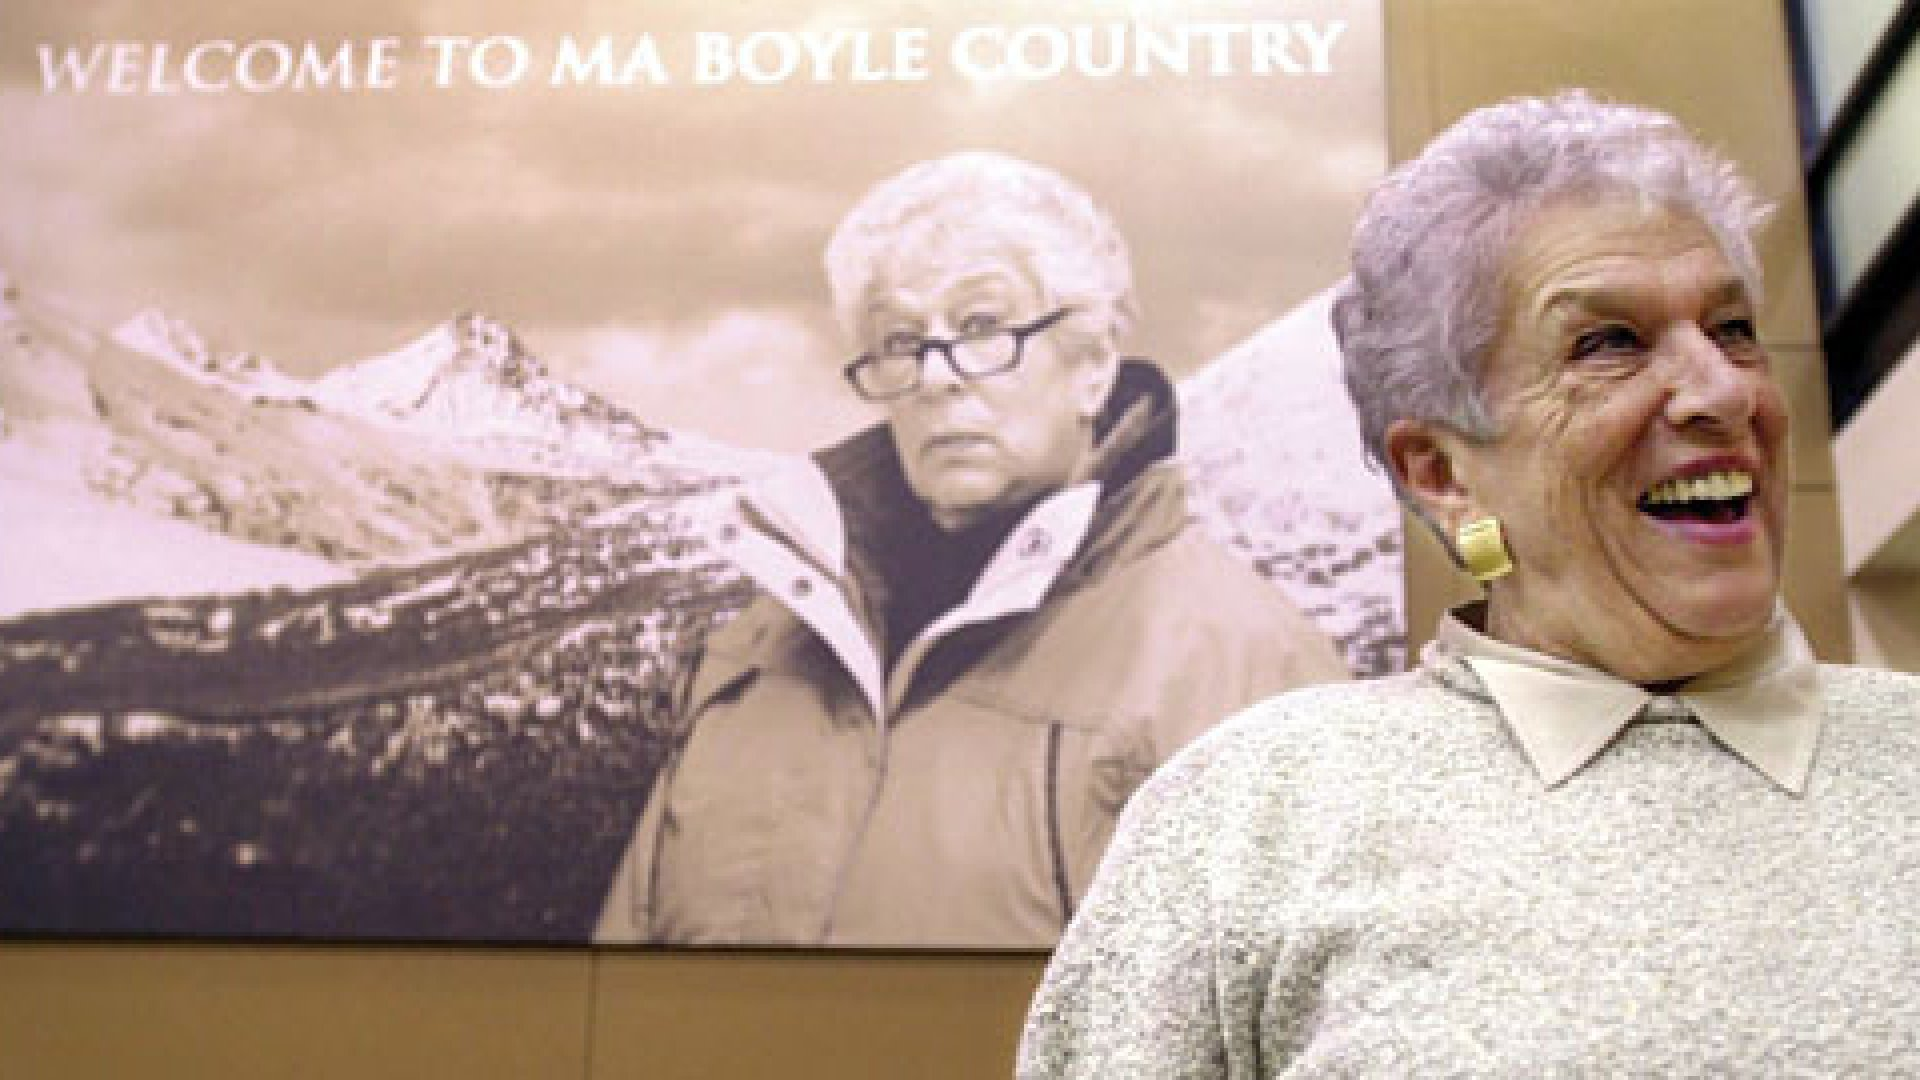 Columbia Sportswear chairwoman Gert Boyle recently thwarted a robbery attempt.